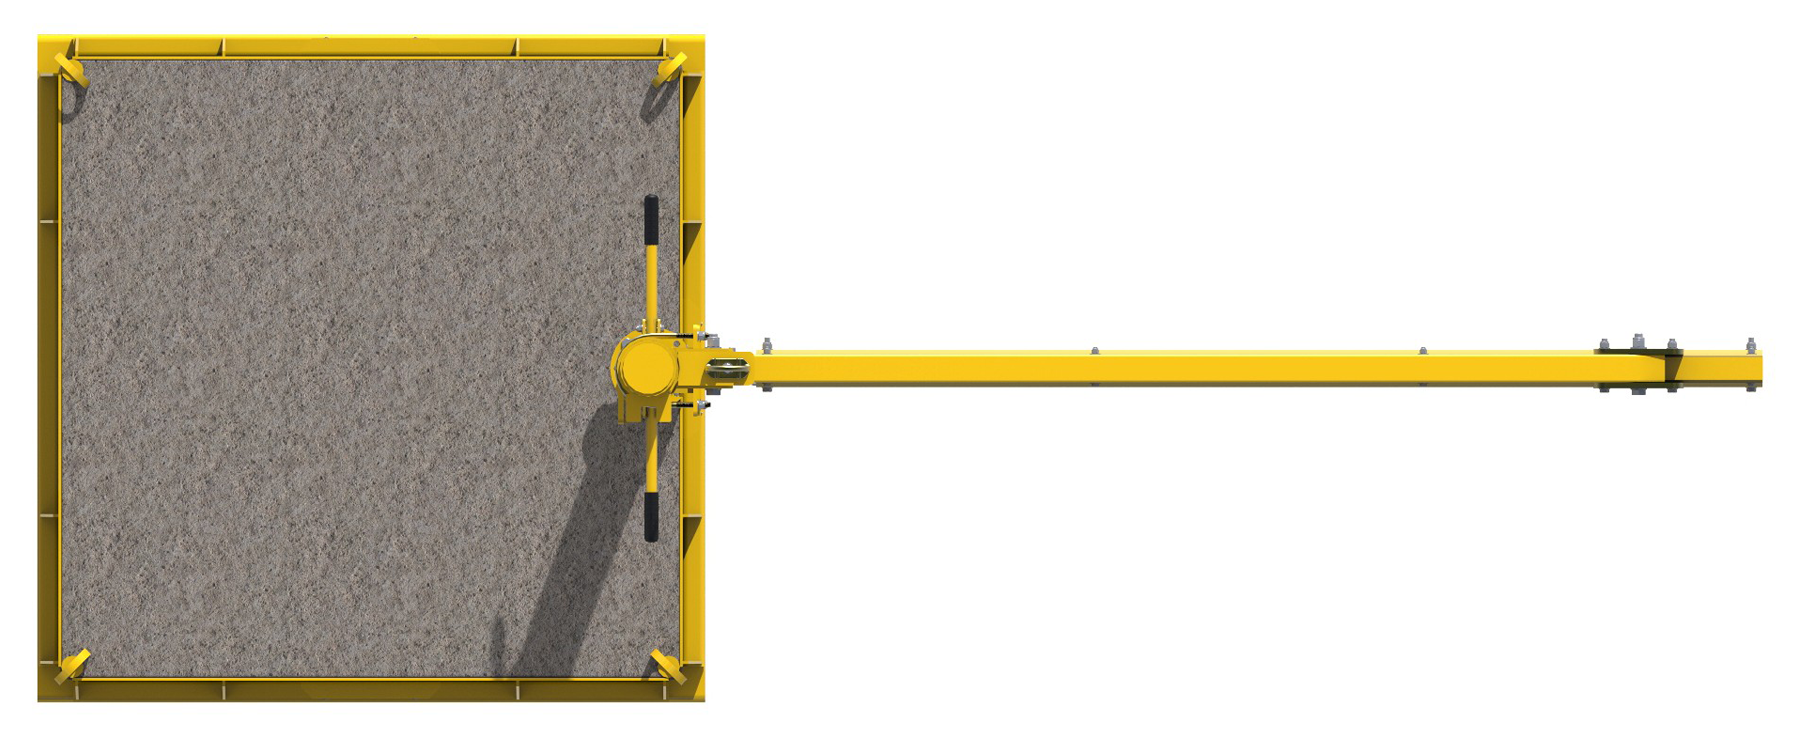 FlexiGuard Portable Counterweighted Jib Fall Arrest System, Top View